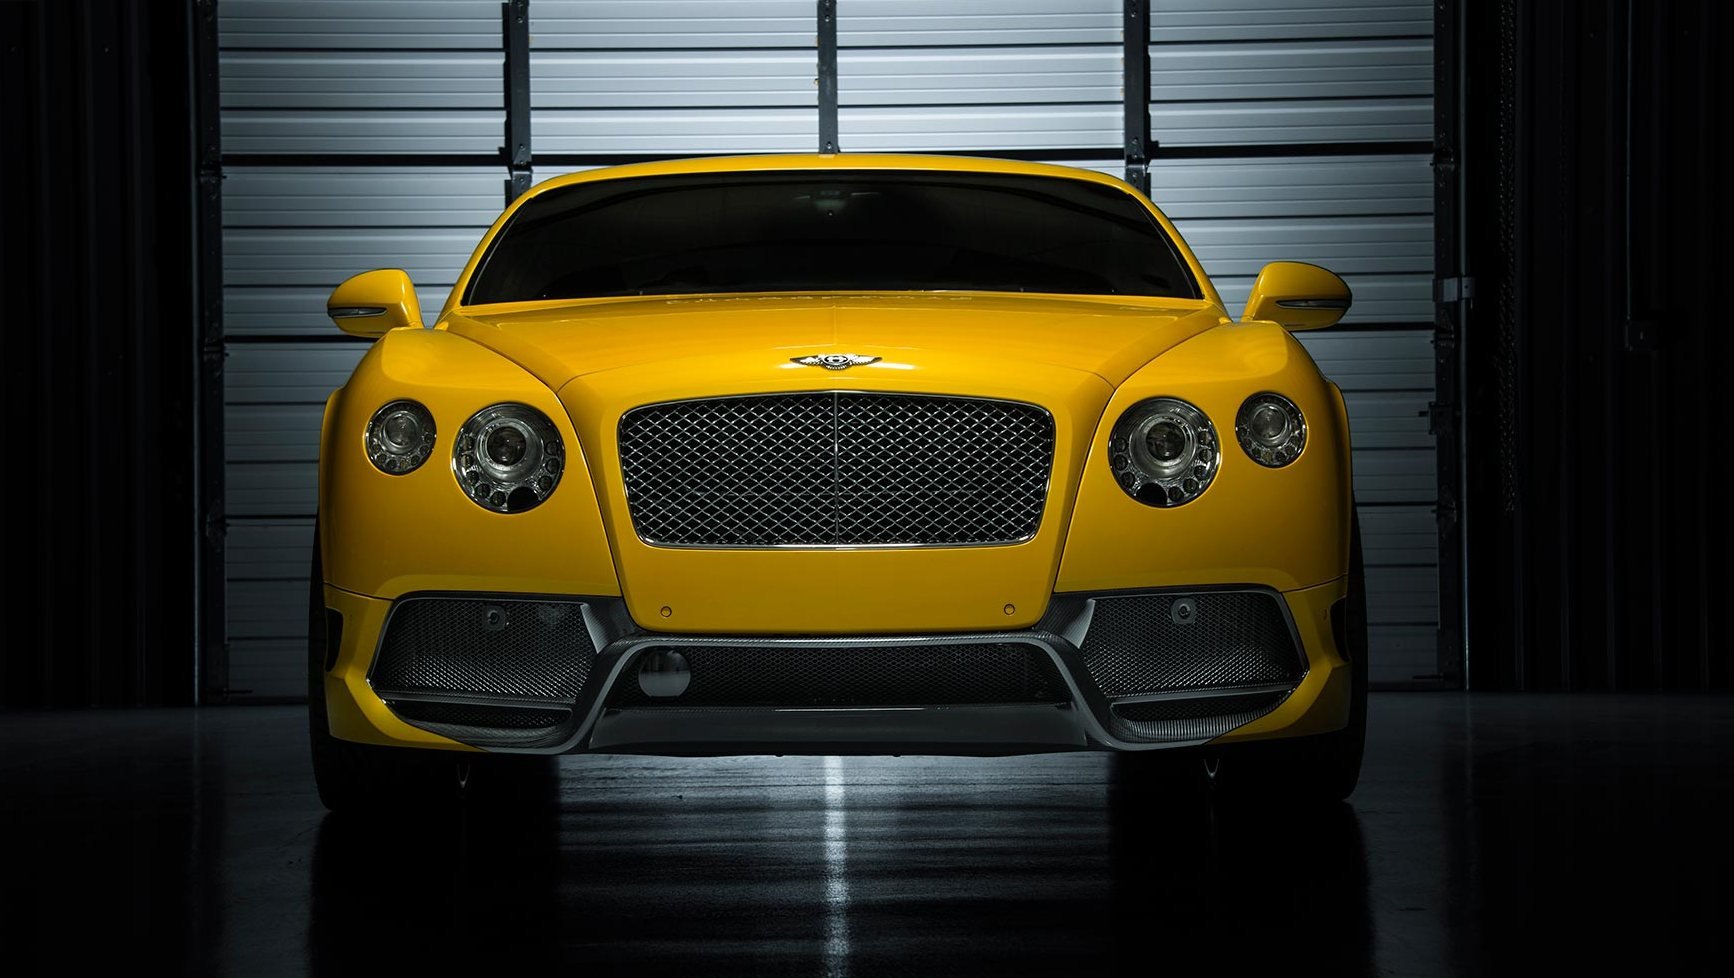 Bentley-Continental-GT-BR10RS-Aero-Program-7.jpg